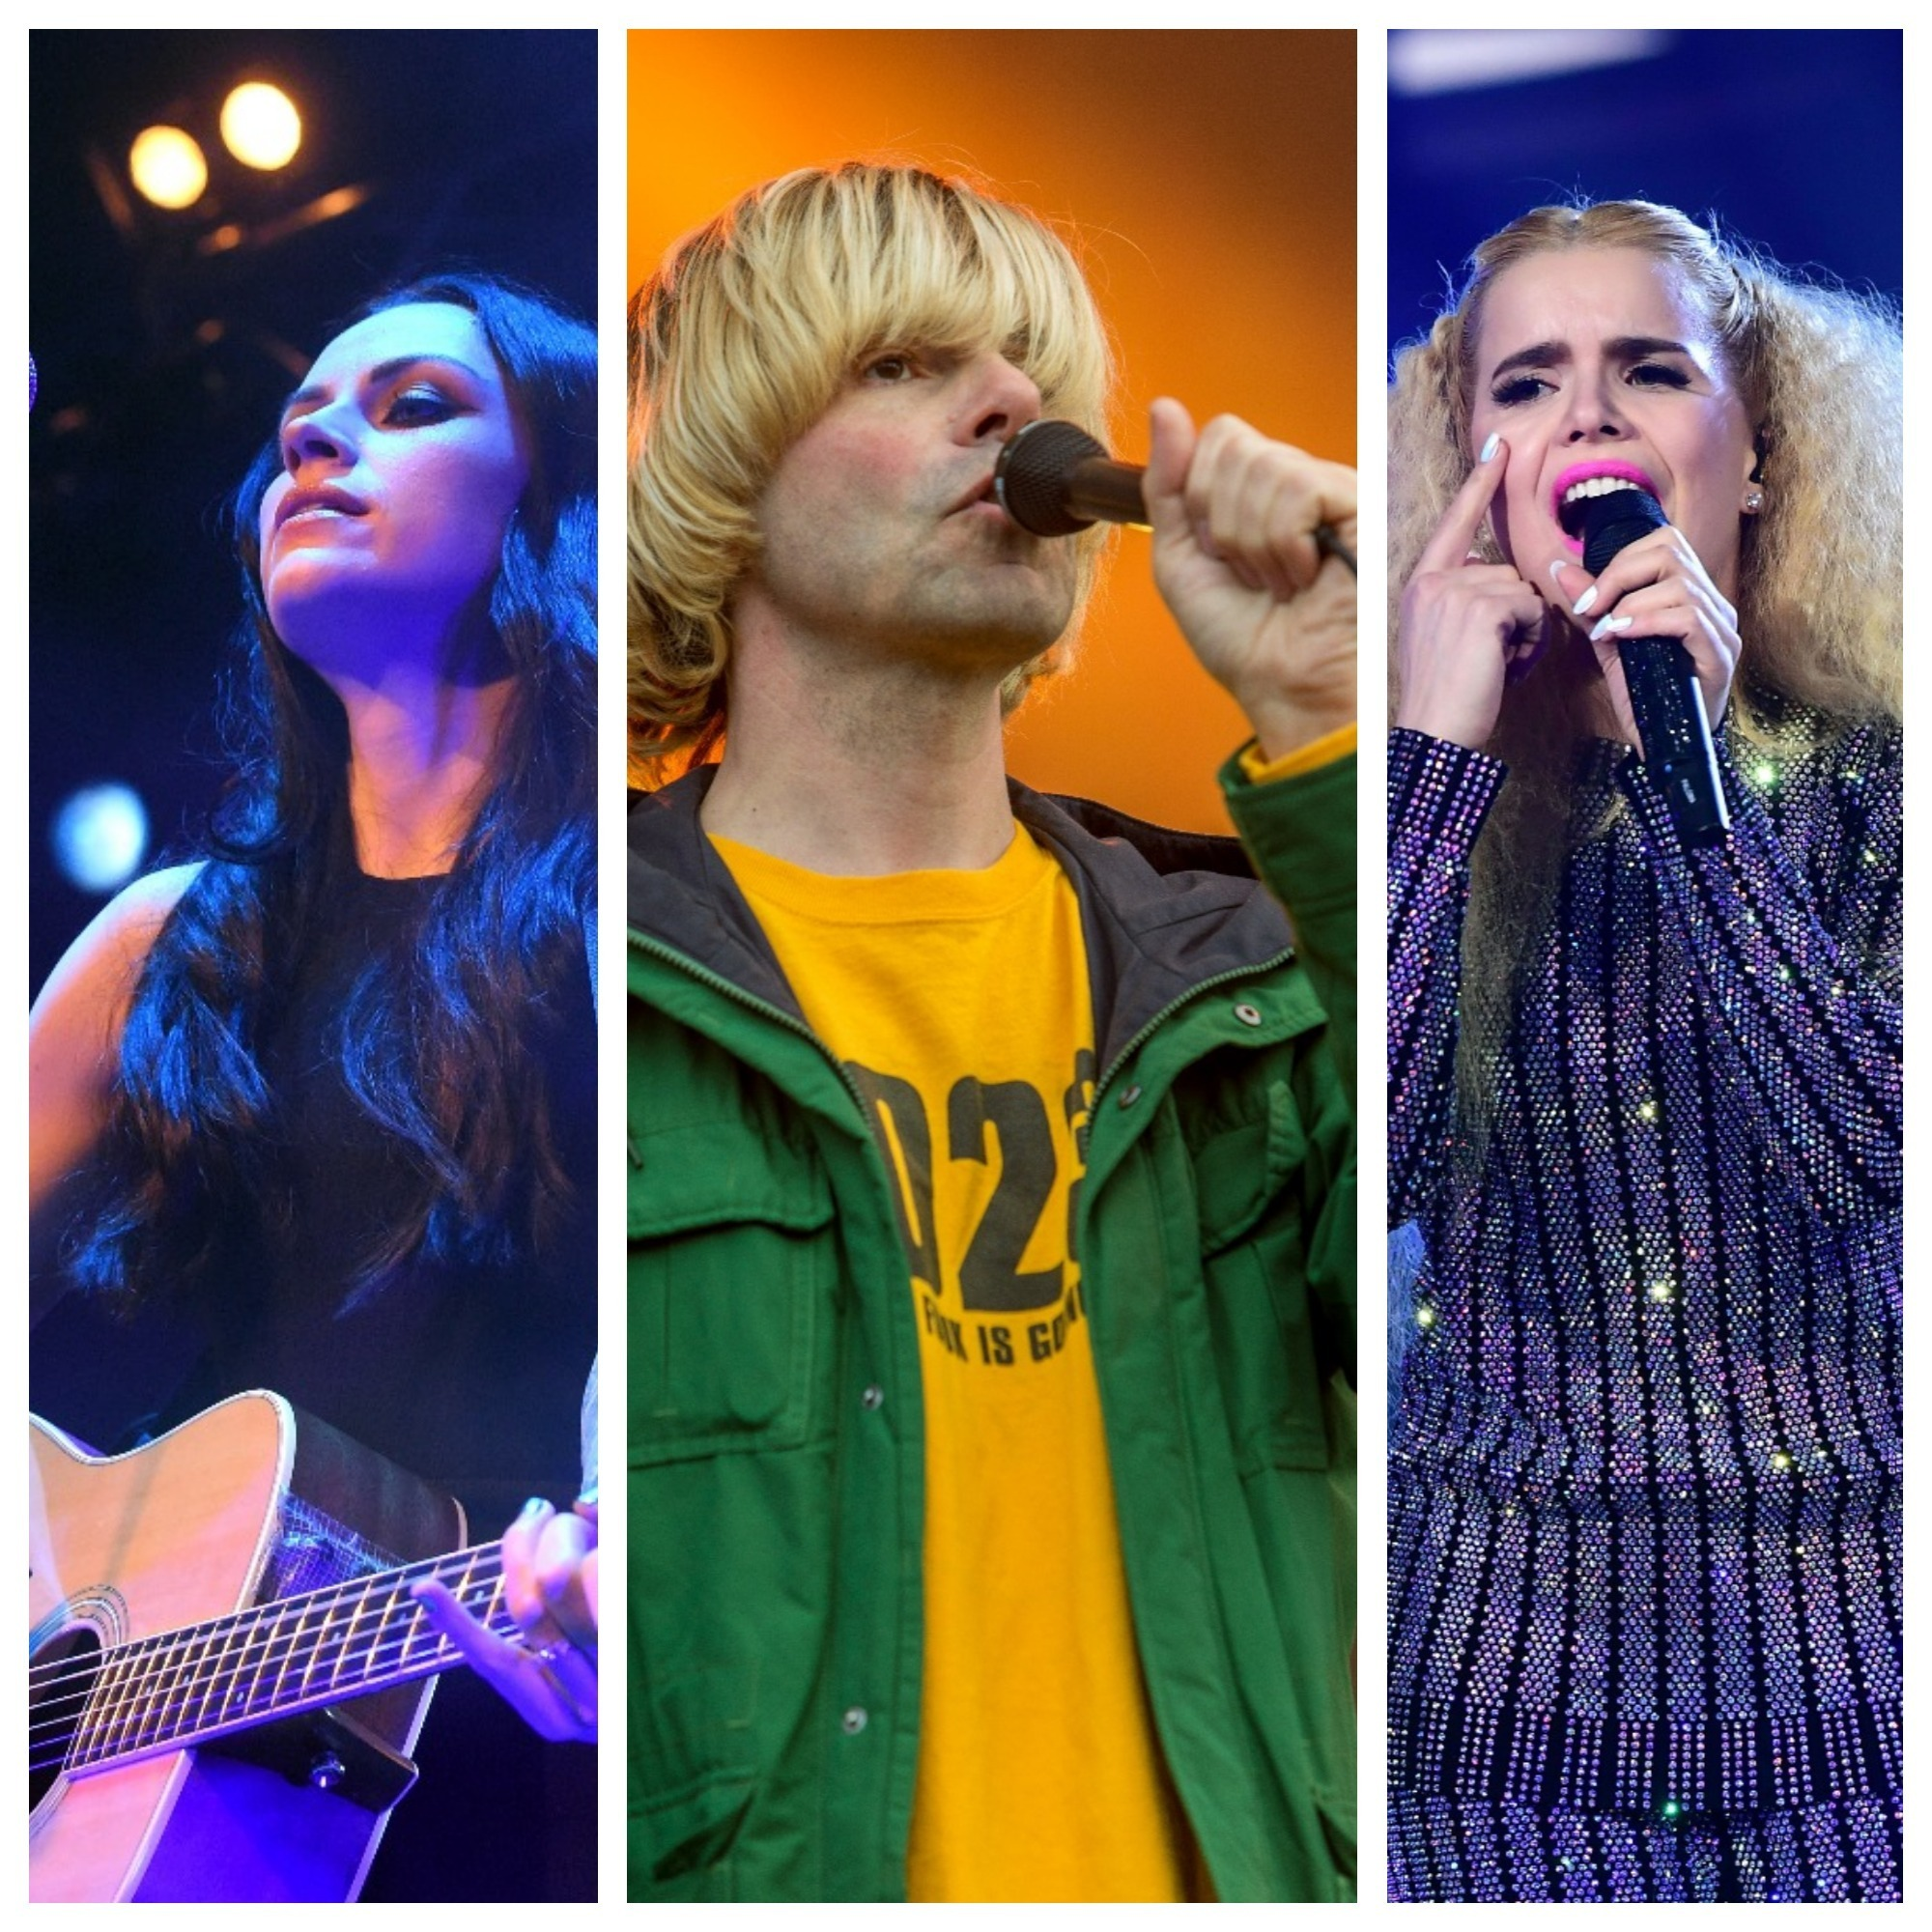 Paloma Faith, the Charlatans and Amy Macdonald will headline this year's Belladrum festival.